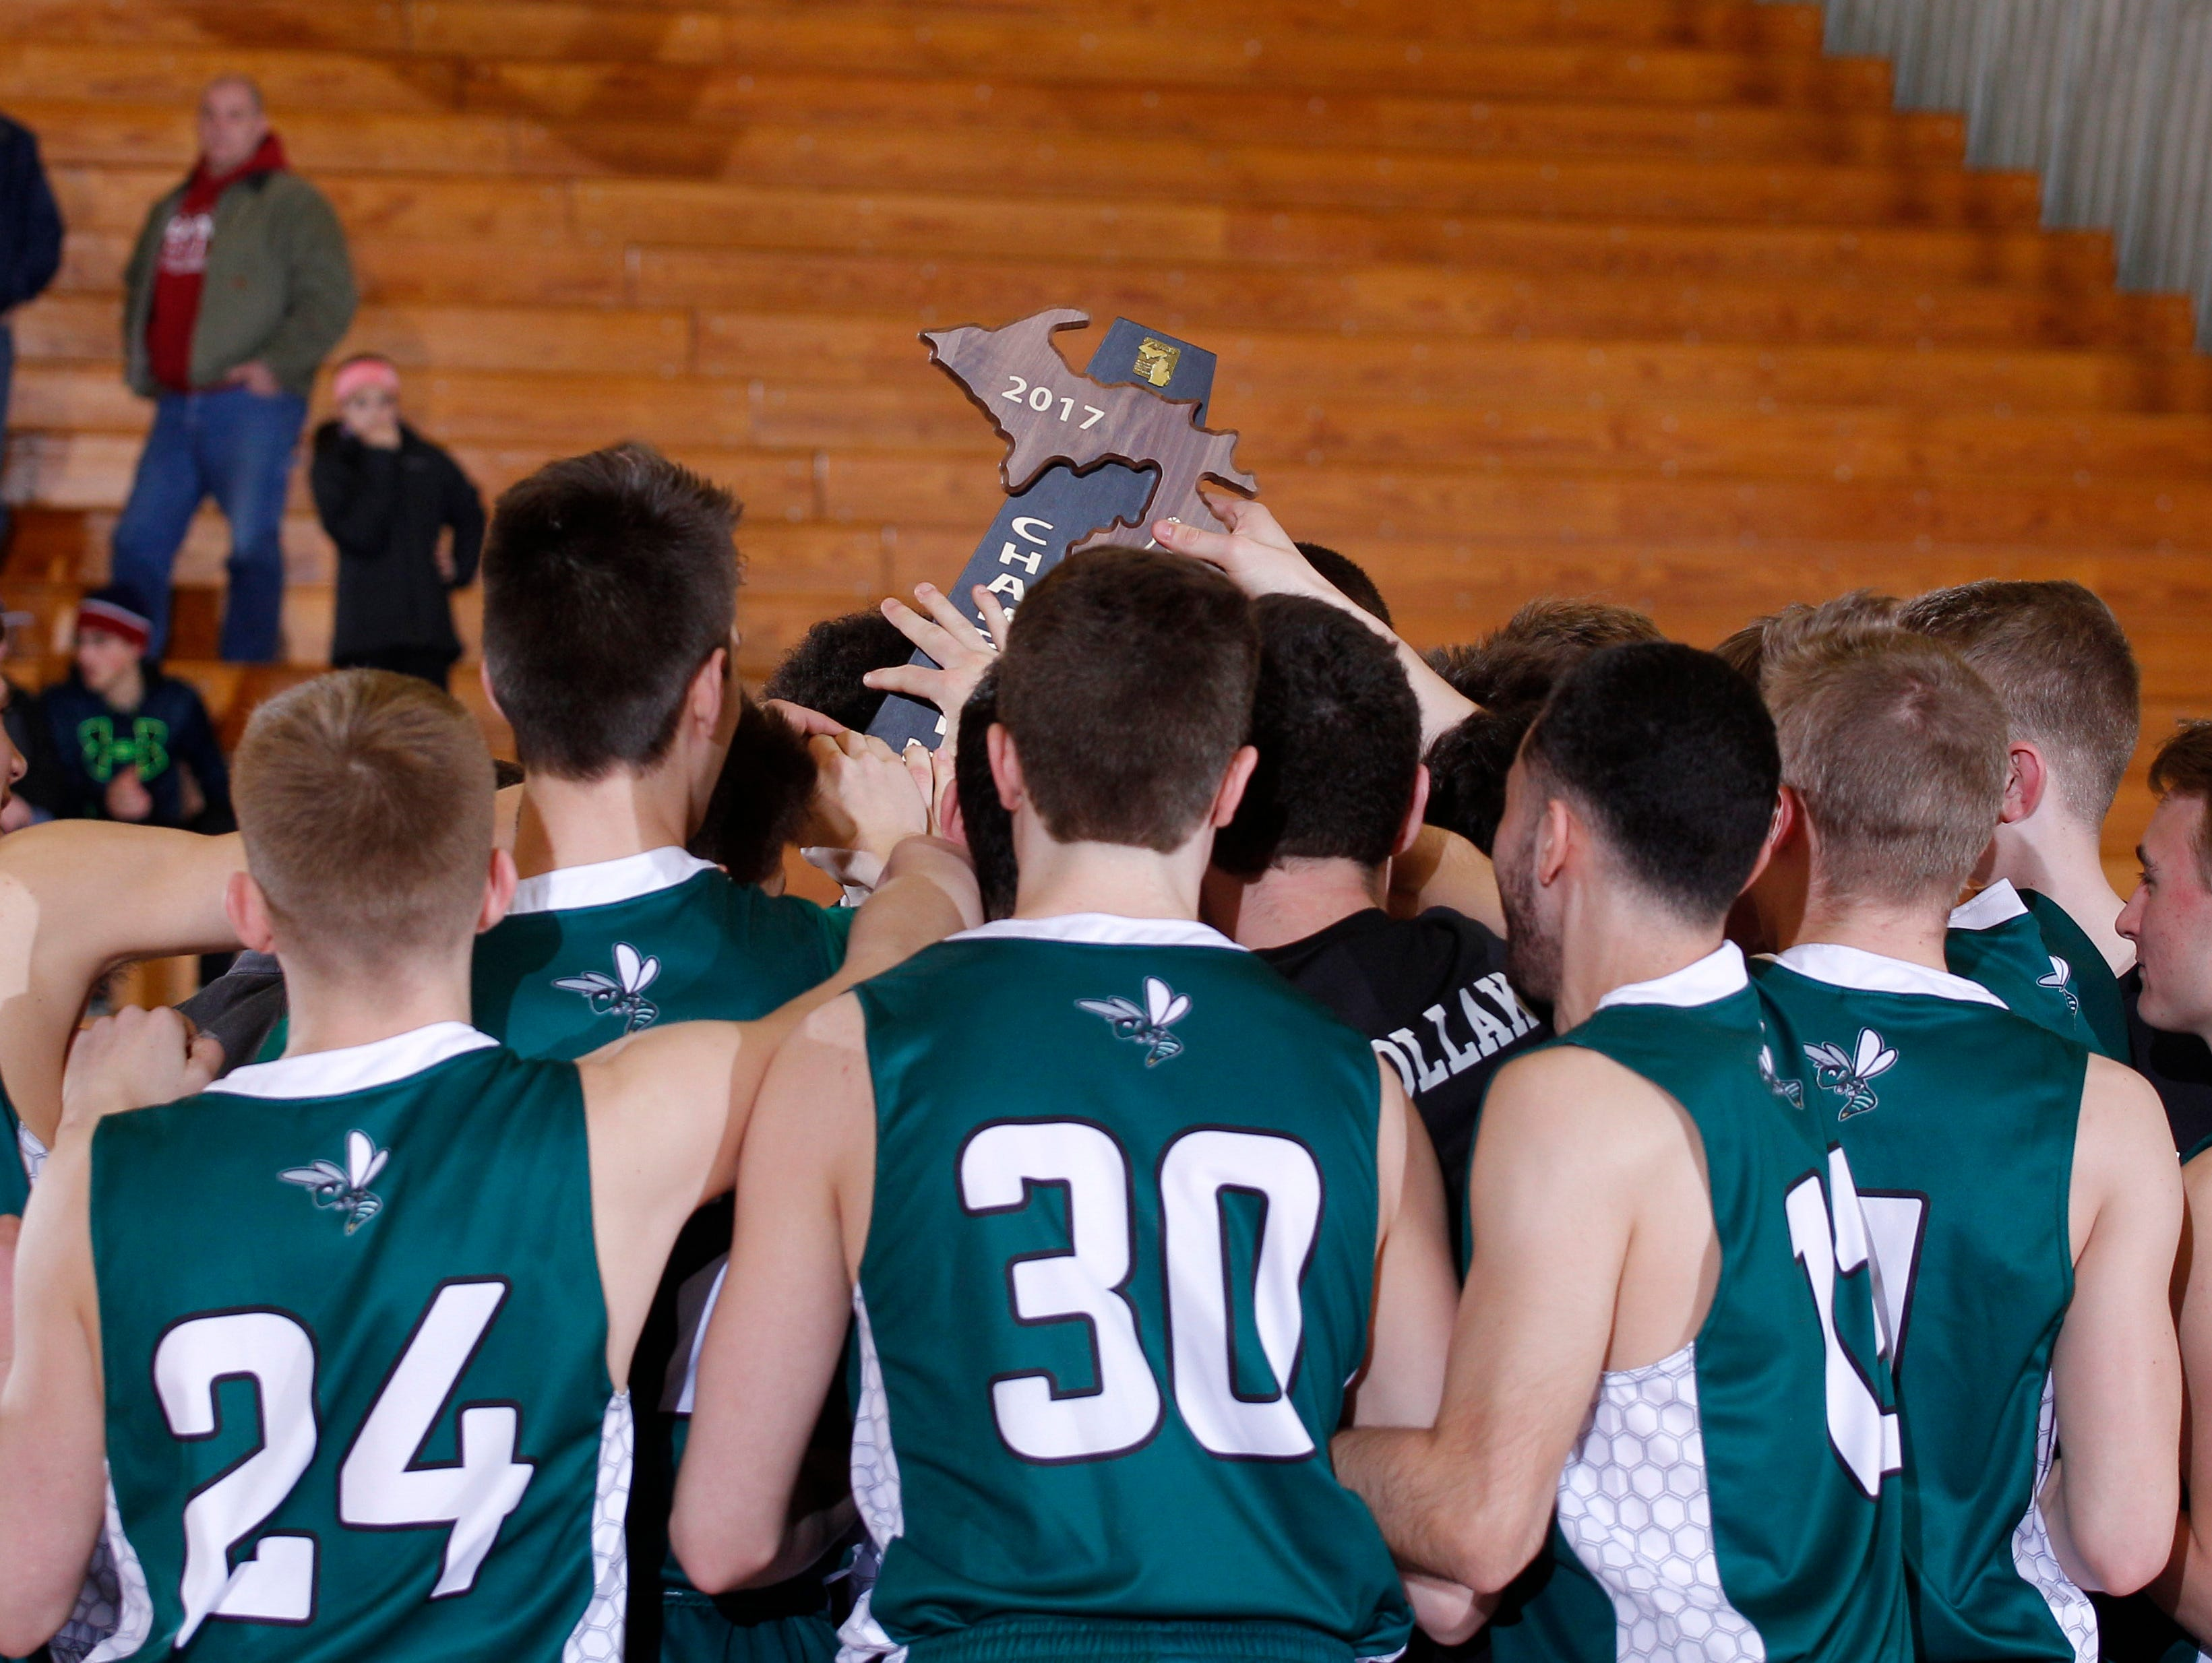 Williamston players celebrate with their regional championship trophy after defeating Portland 51-40, Wednesday, March 15, 2017, in Ionia, Mich.